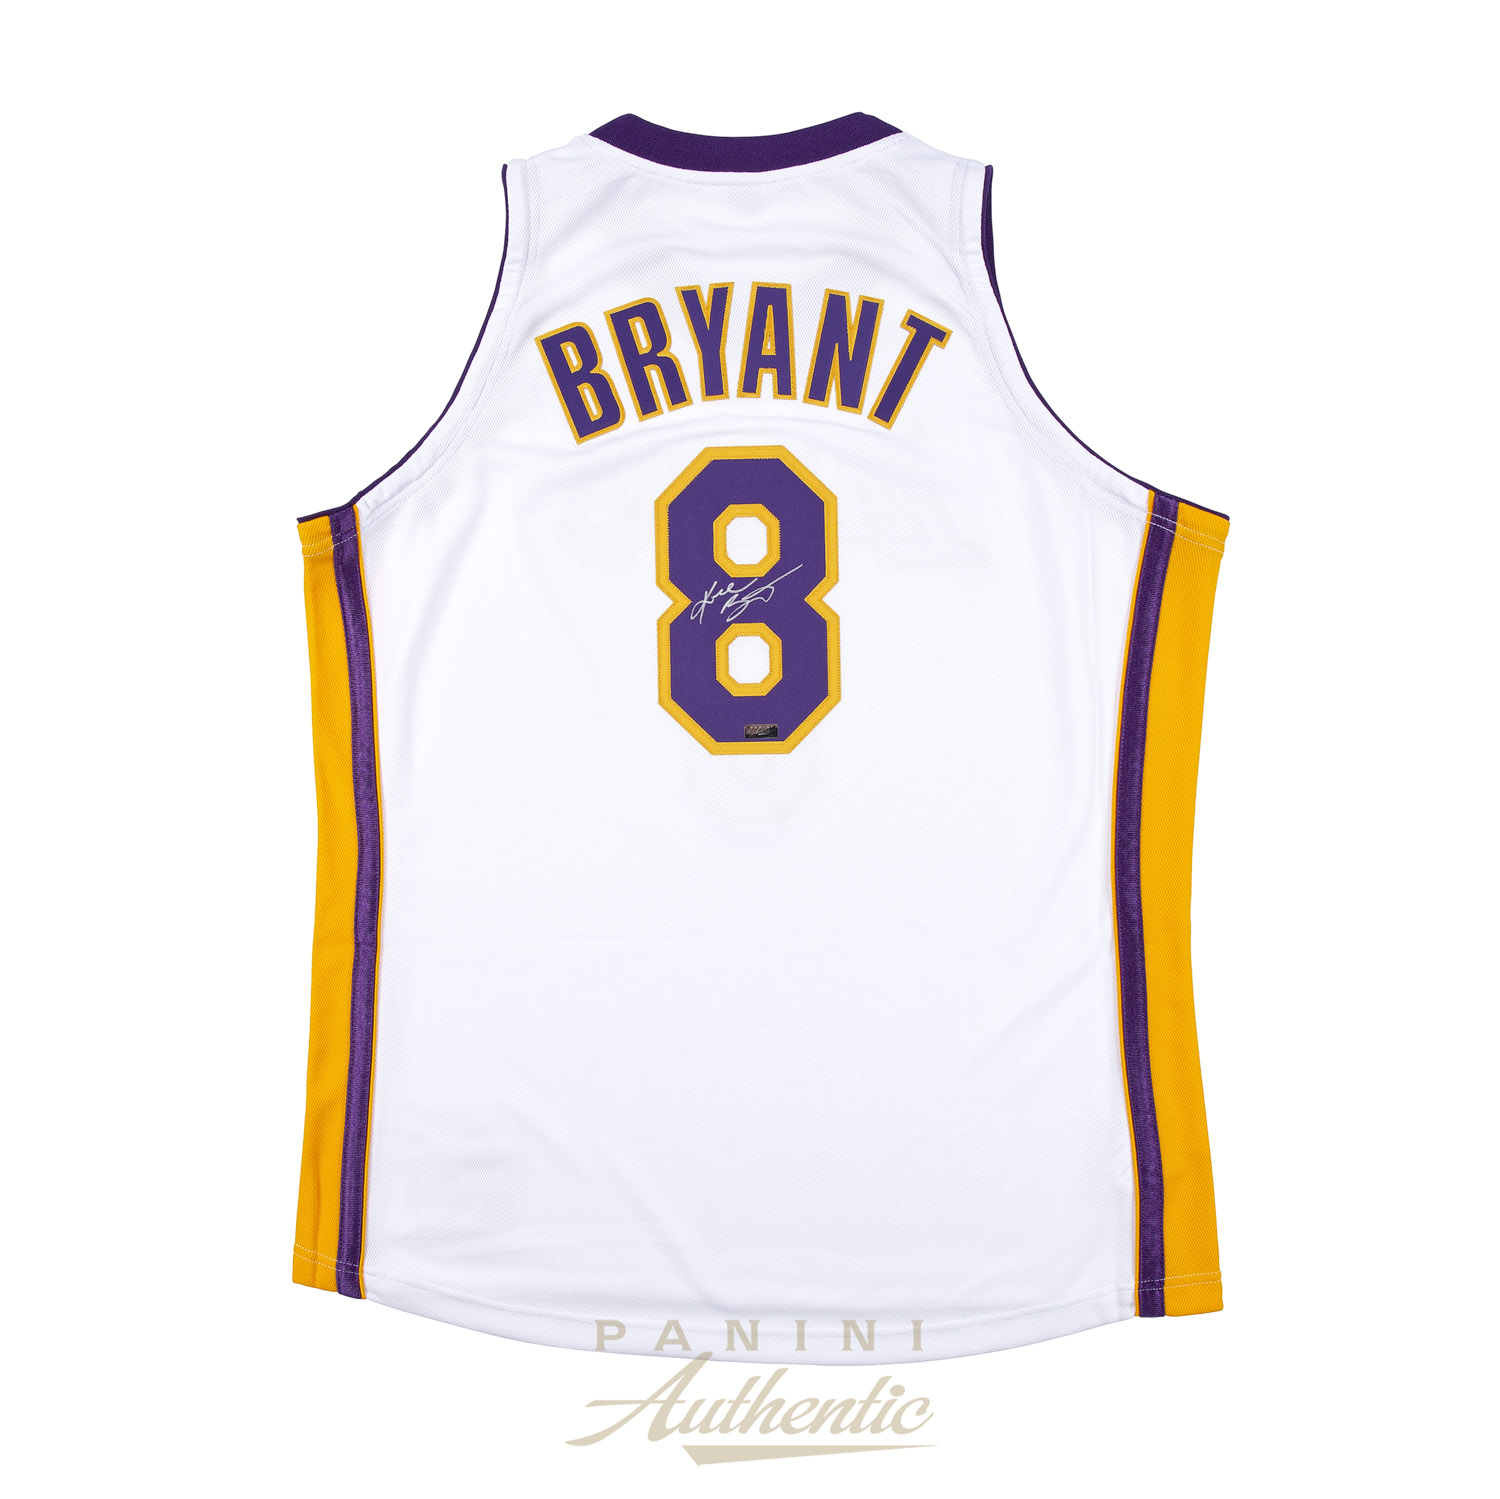 cheap for discount f77e4 b4884 Kobe Bryant Autographed 2003-04 Mitchell & Ness White ...